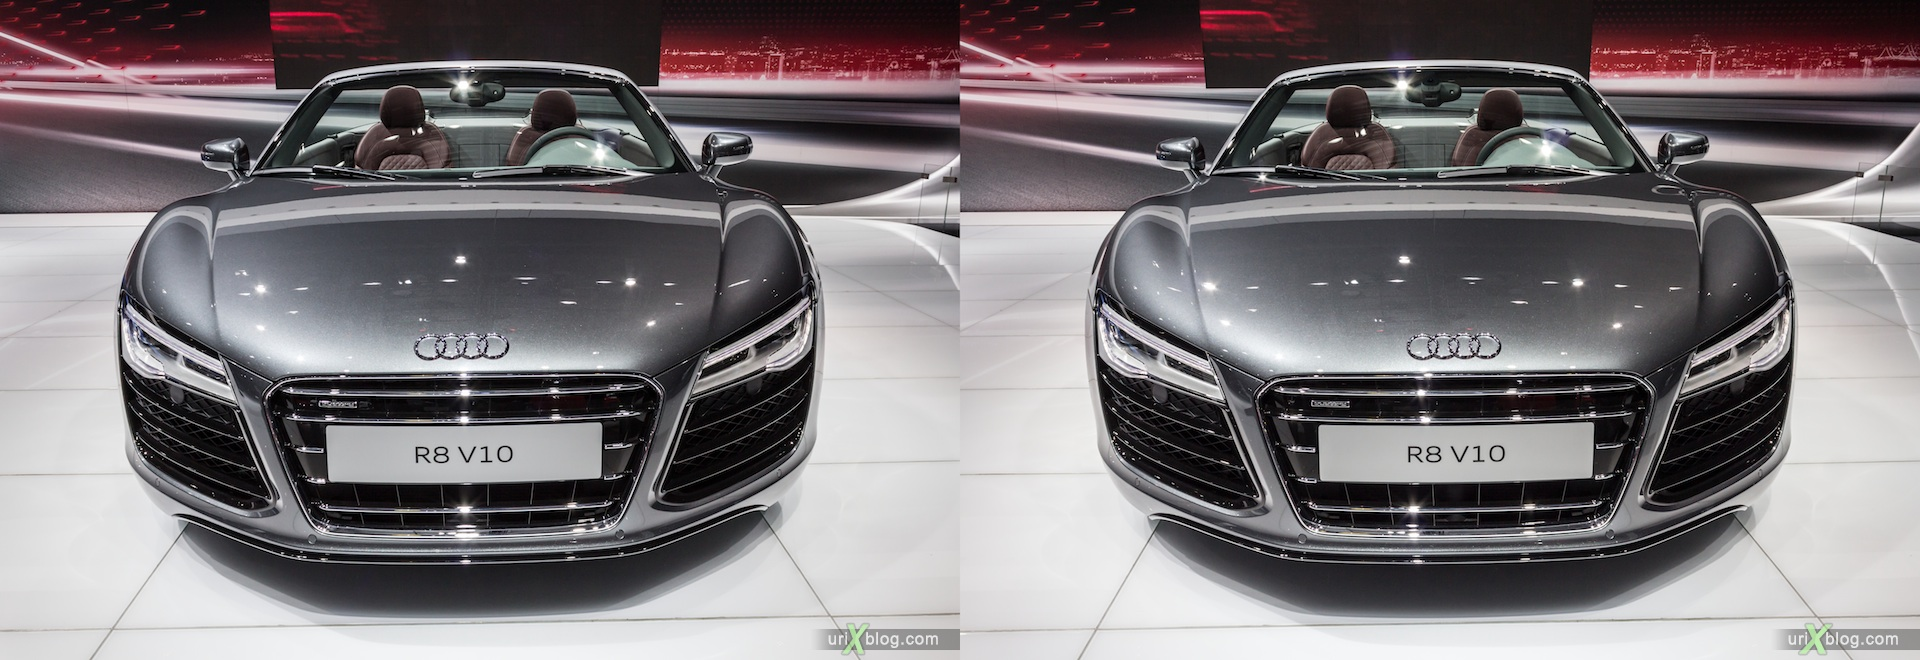 2012, Audi R8 V10, Moscow International Automobile Salon, auto show, 3D, stereo pair, cross-eyed, crossview